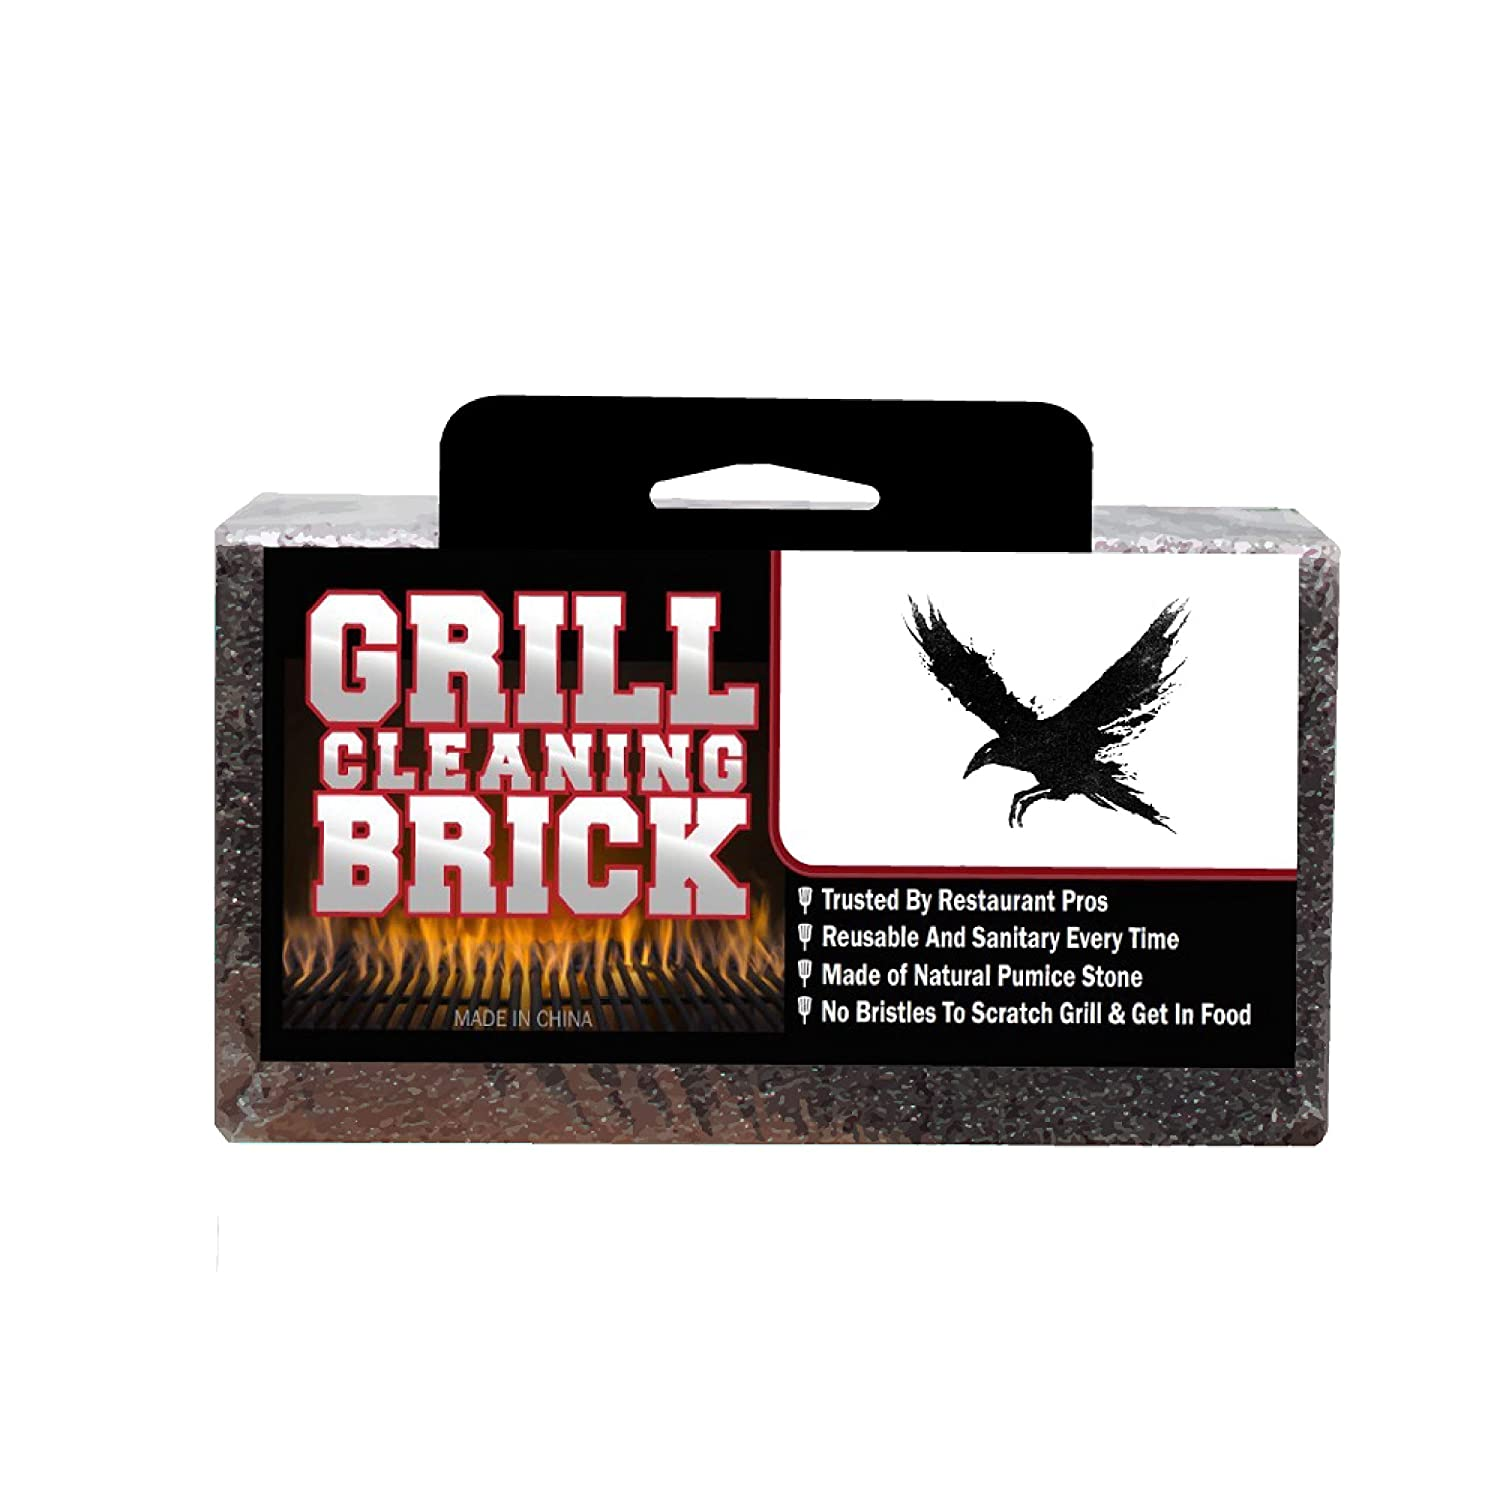 Grill Bricks | Stone | Large | Commercial Cleaning & Sanitation| Gas Grill | Grilling Stone Cleaner | BBQ | Pumice Black Raven Industries